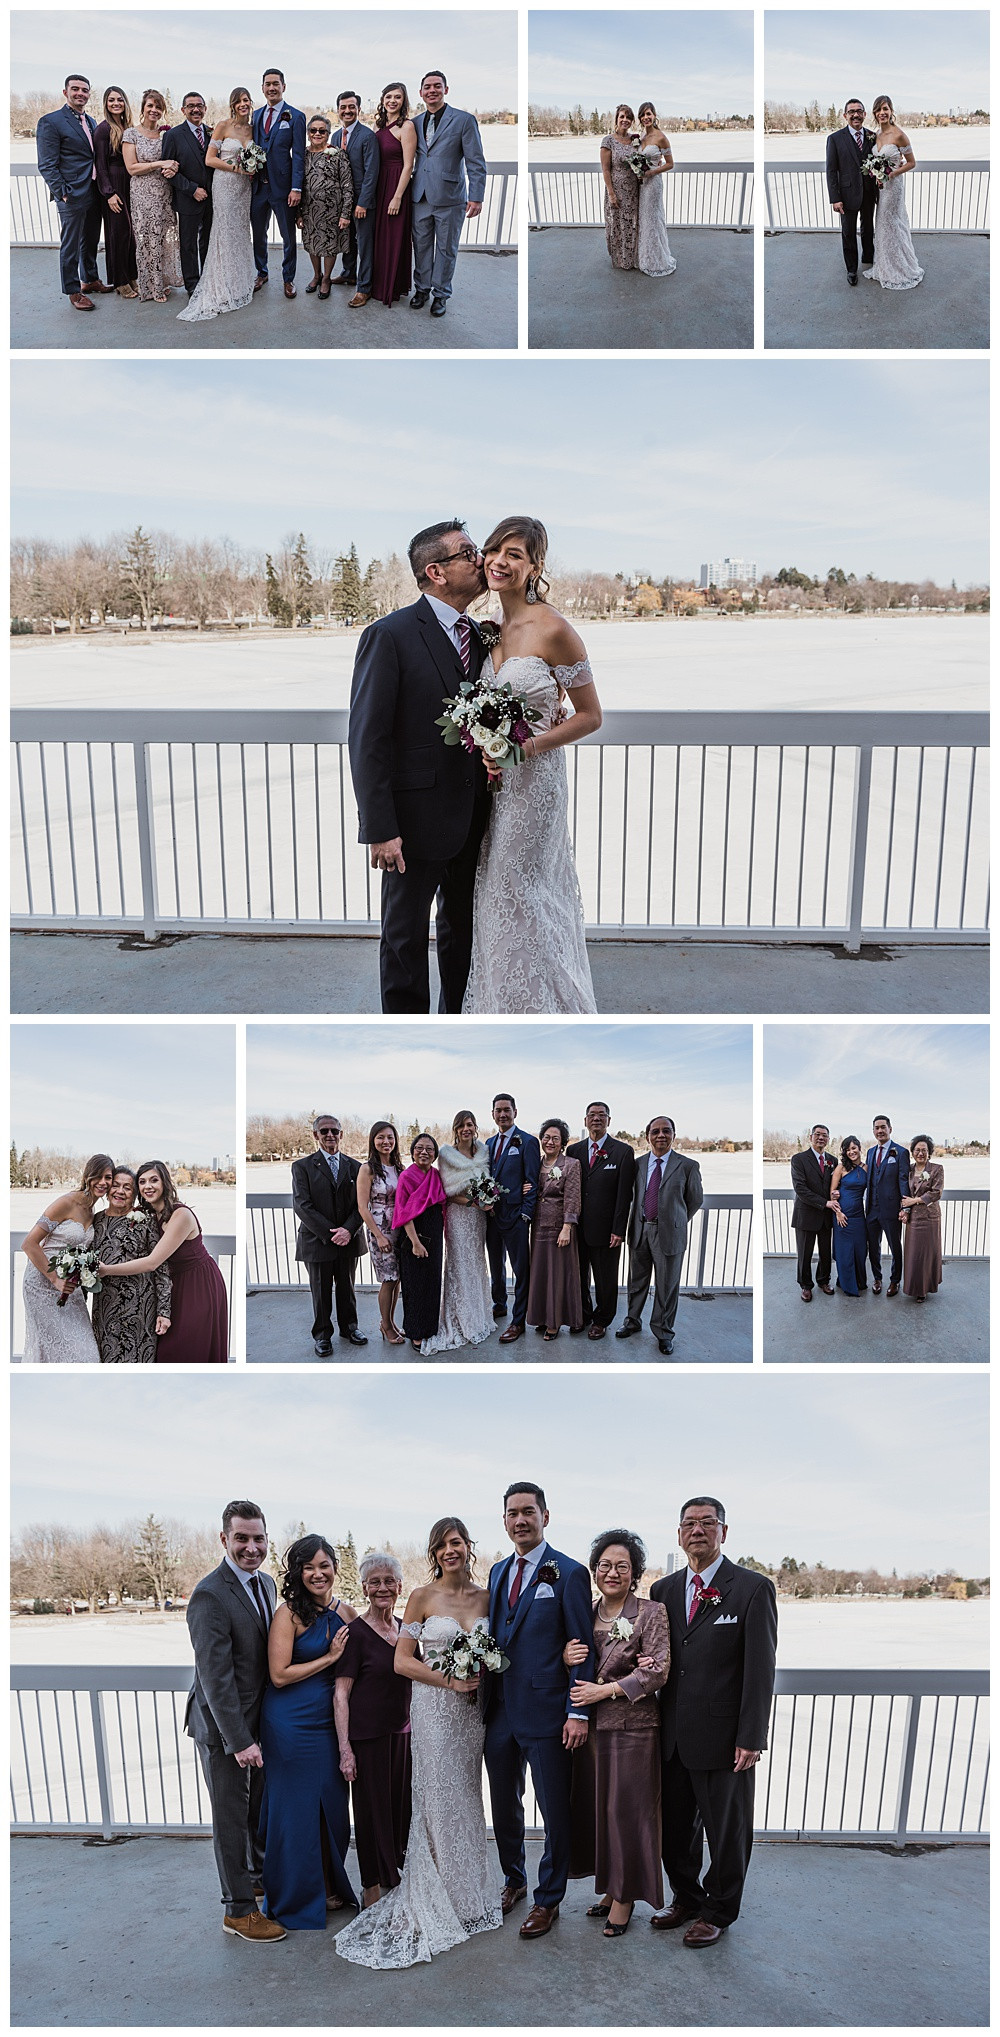 Ottawa Wedding Photographer, Ottawa Wedding Photography, Formal Portraits, Lago Bar & Grill